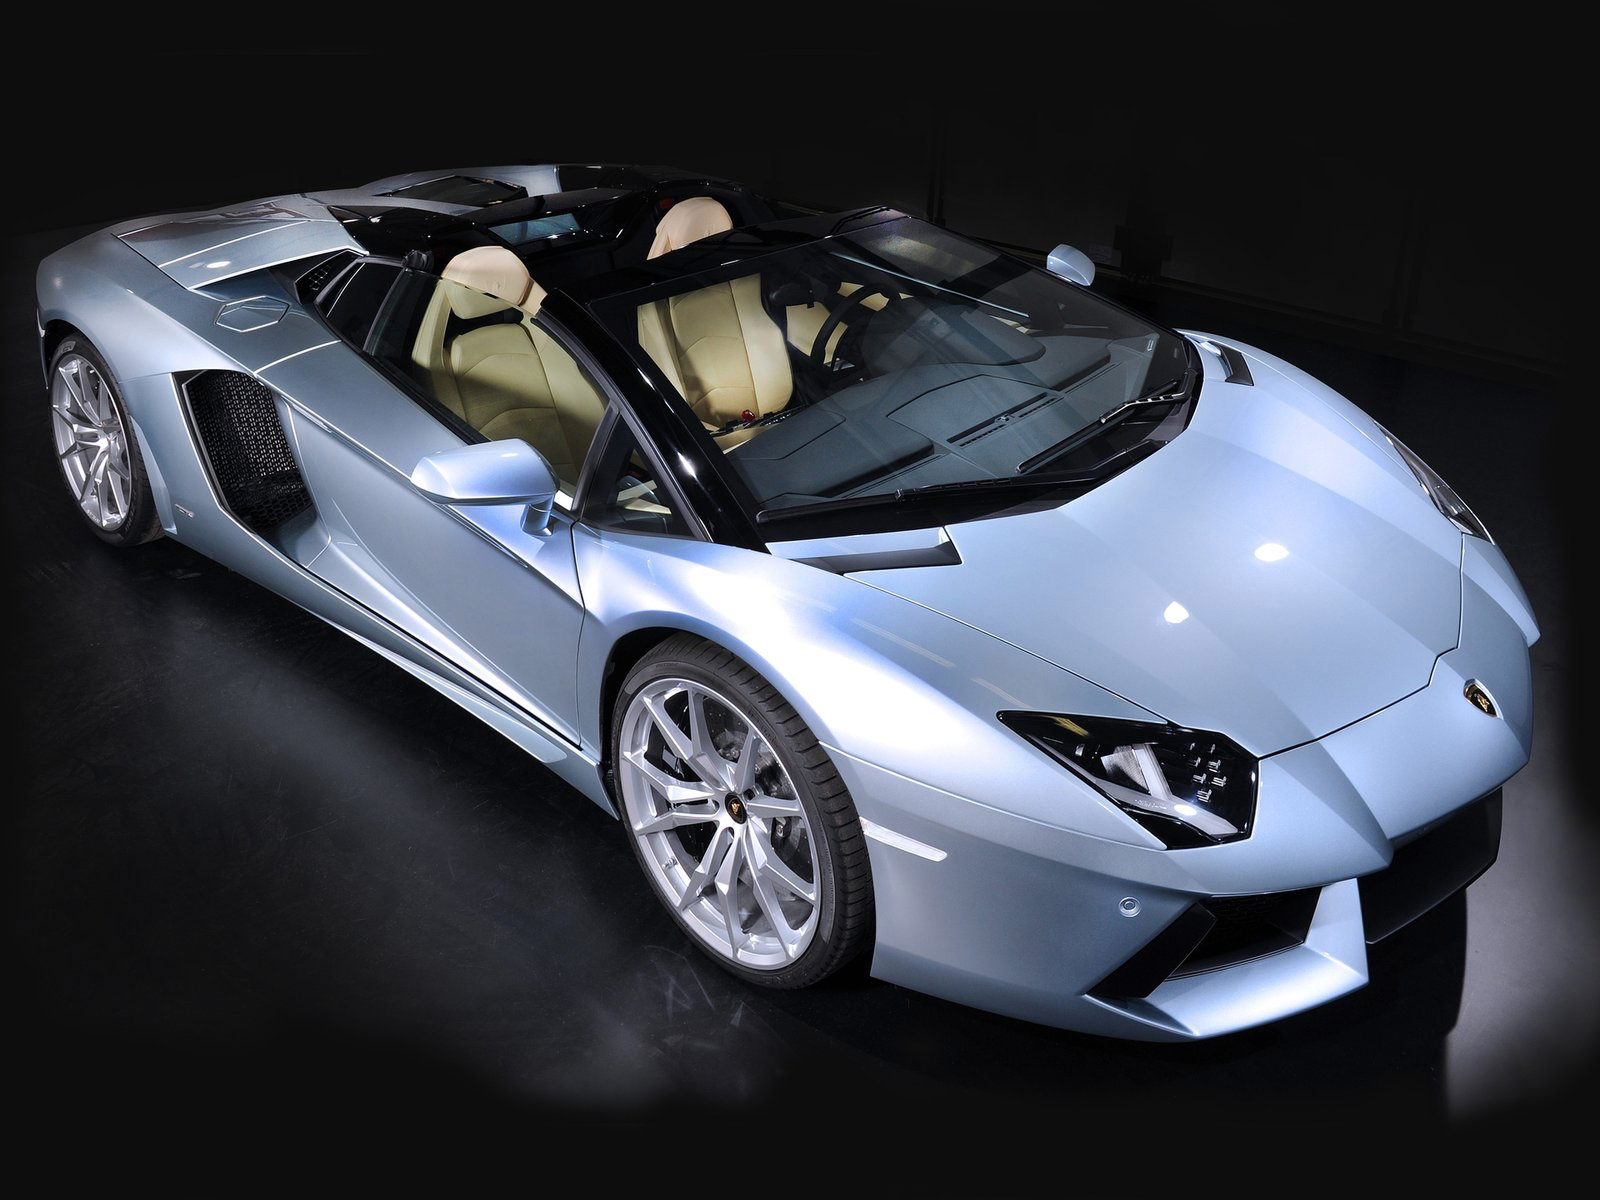 autoguide to news it rwd lamborghini how for cost smart insure insurance huracan does a com auto spyder much